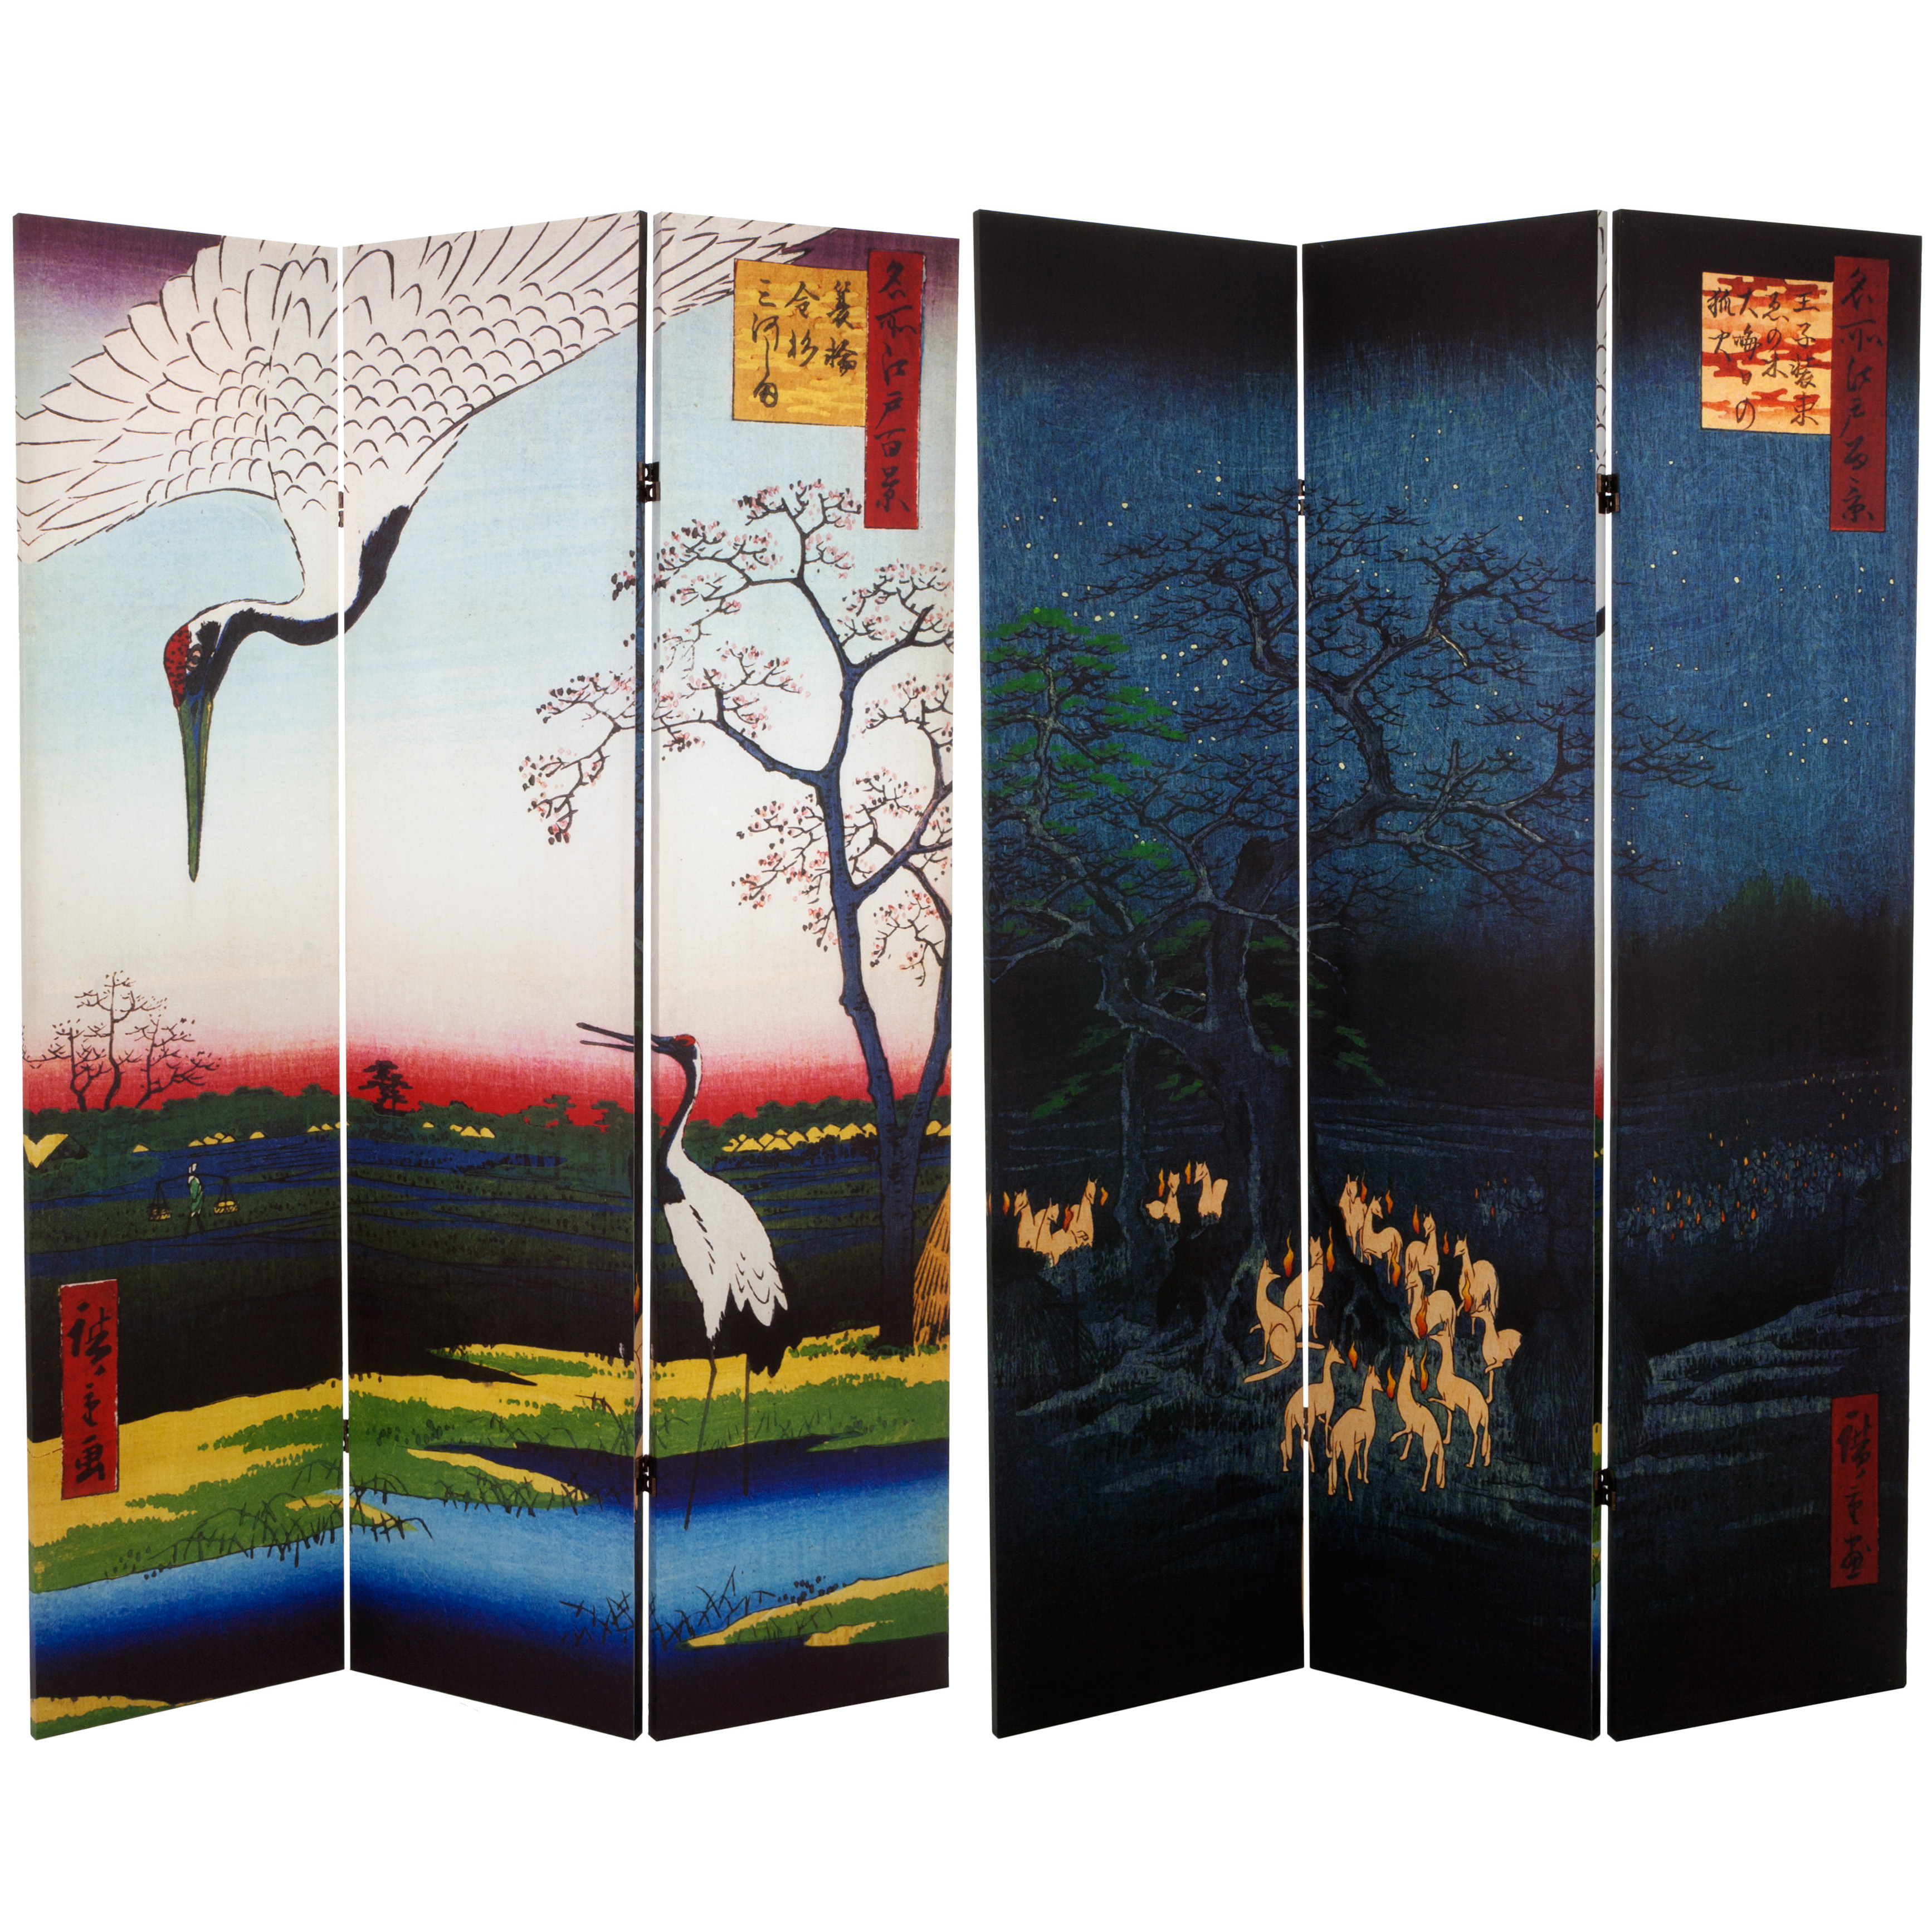 Buy 6 Ft Tall Double Sided Hiroshige Room Divider